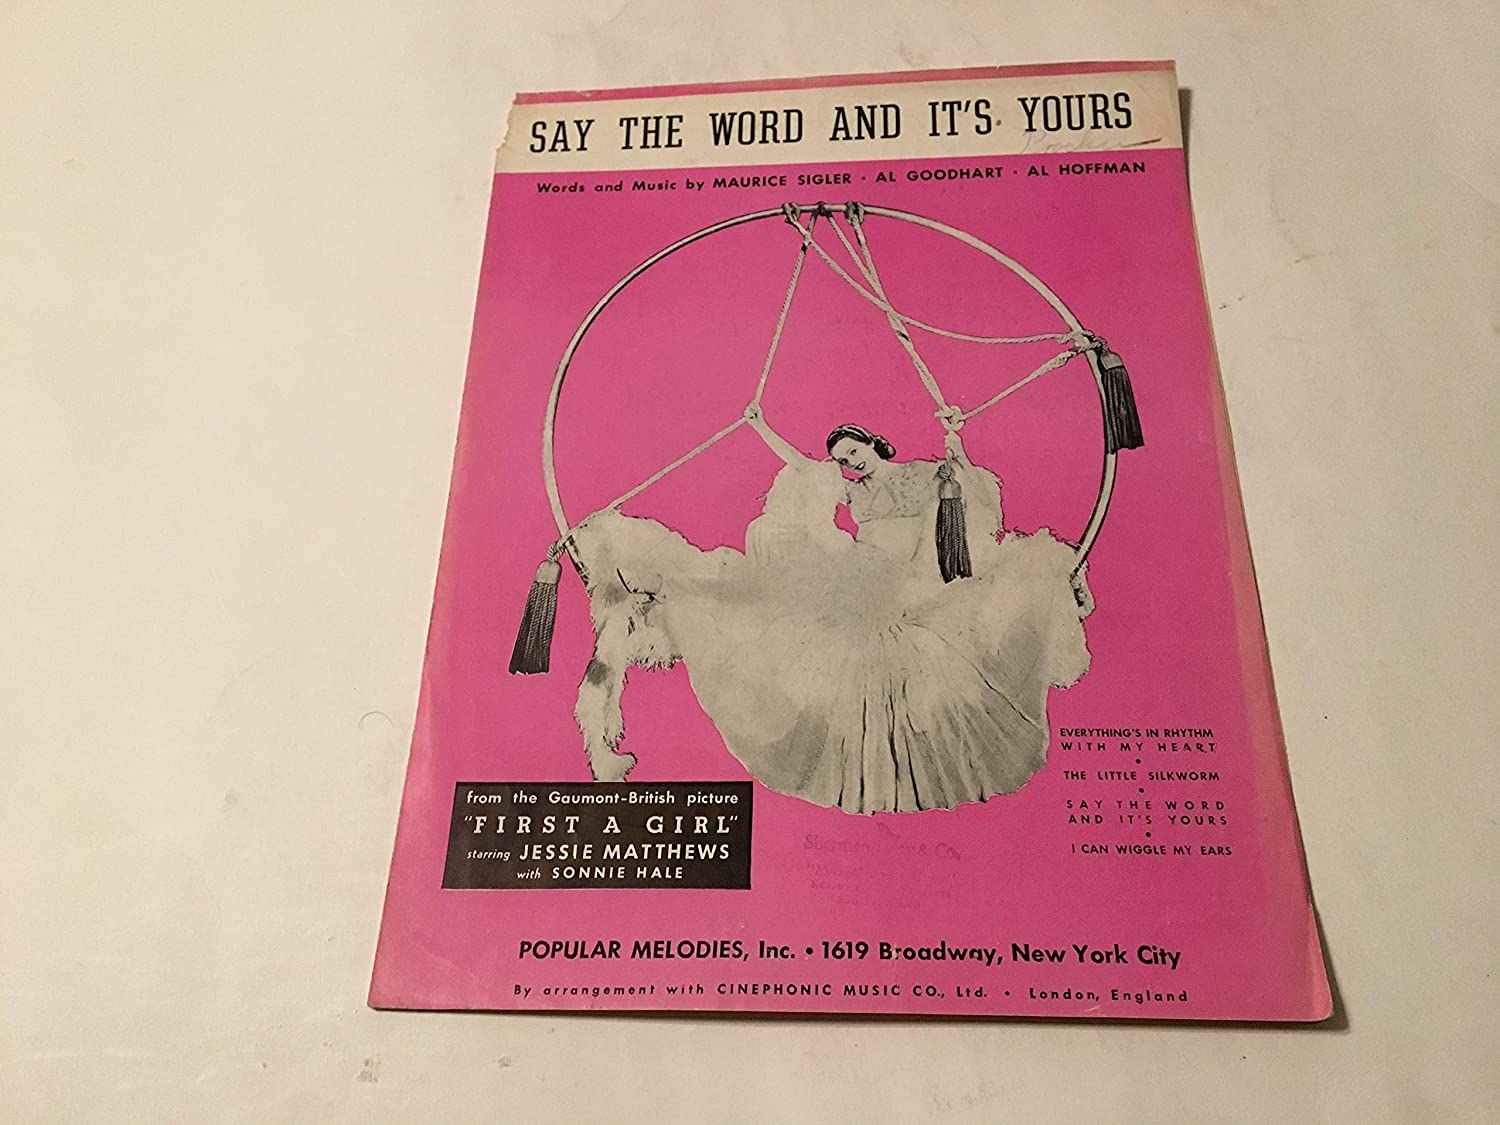 SAY THE WORD AND ITS YOURS SHEET MUSIC